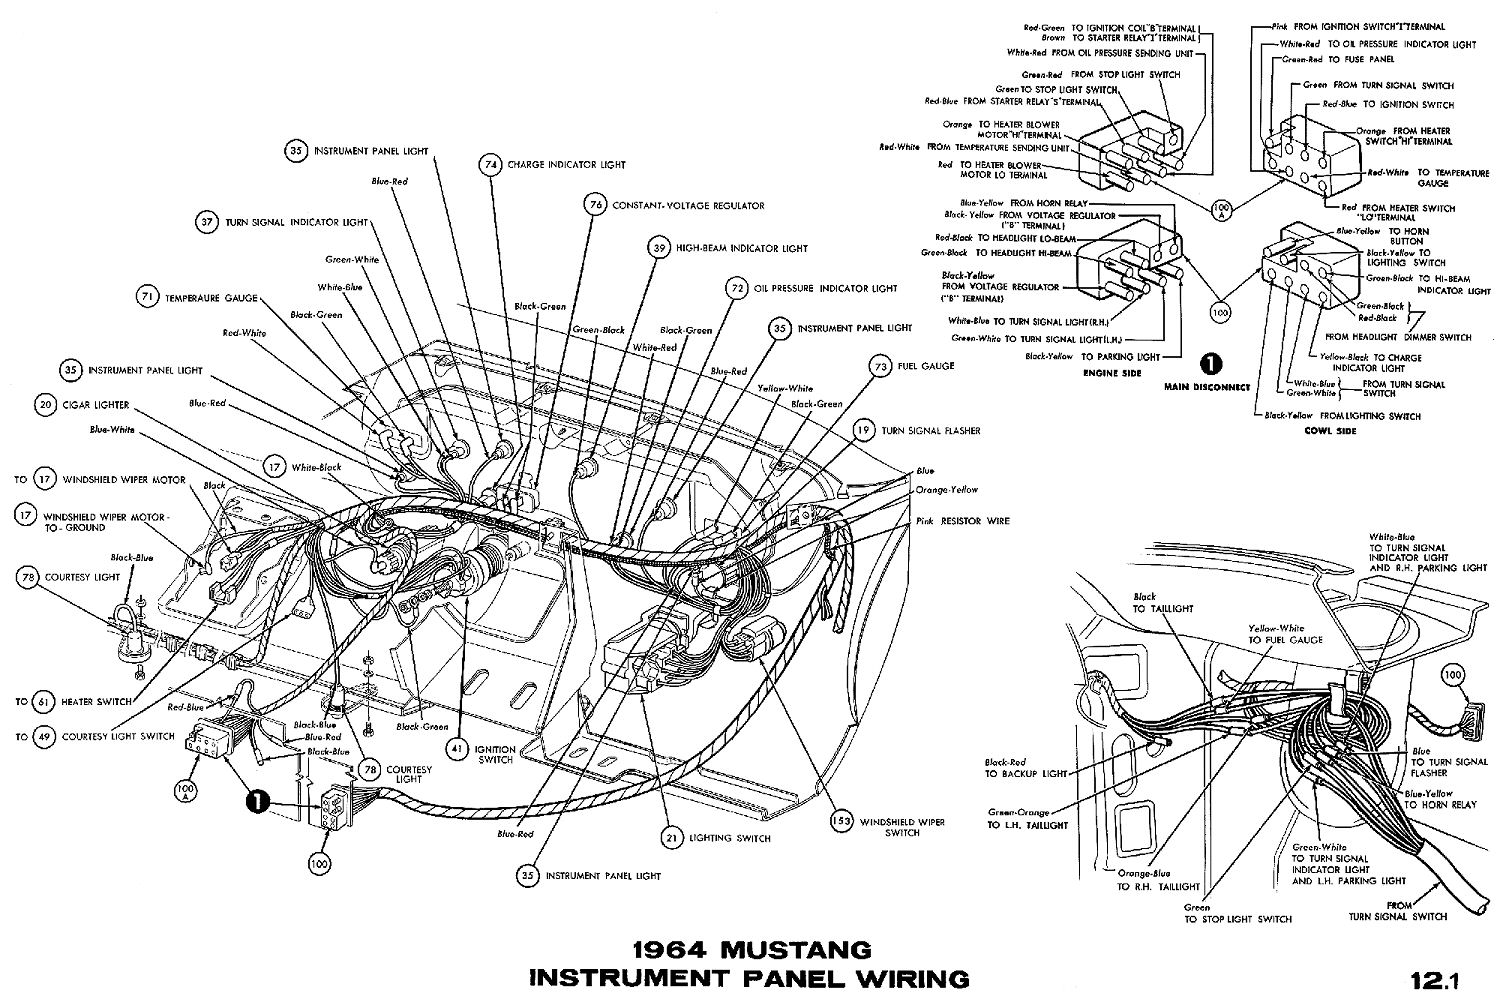 1964 Mustang Wiring Diagrams Average Joe Restoration Basic Headlight Diagram And Turn Instrument Cluster Connections Wiper Switch Headlamp